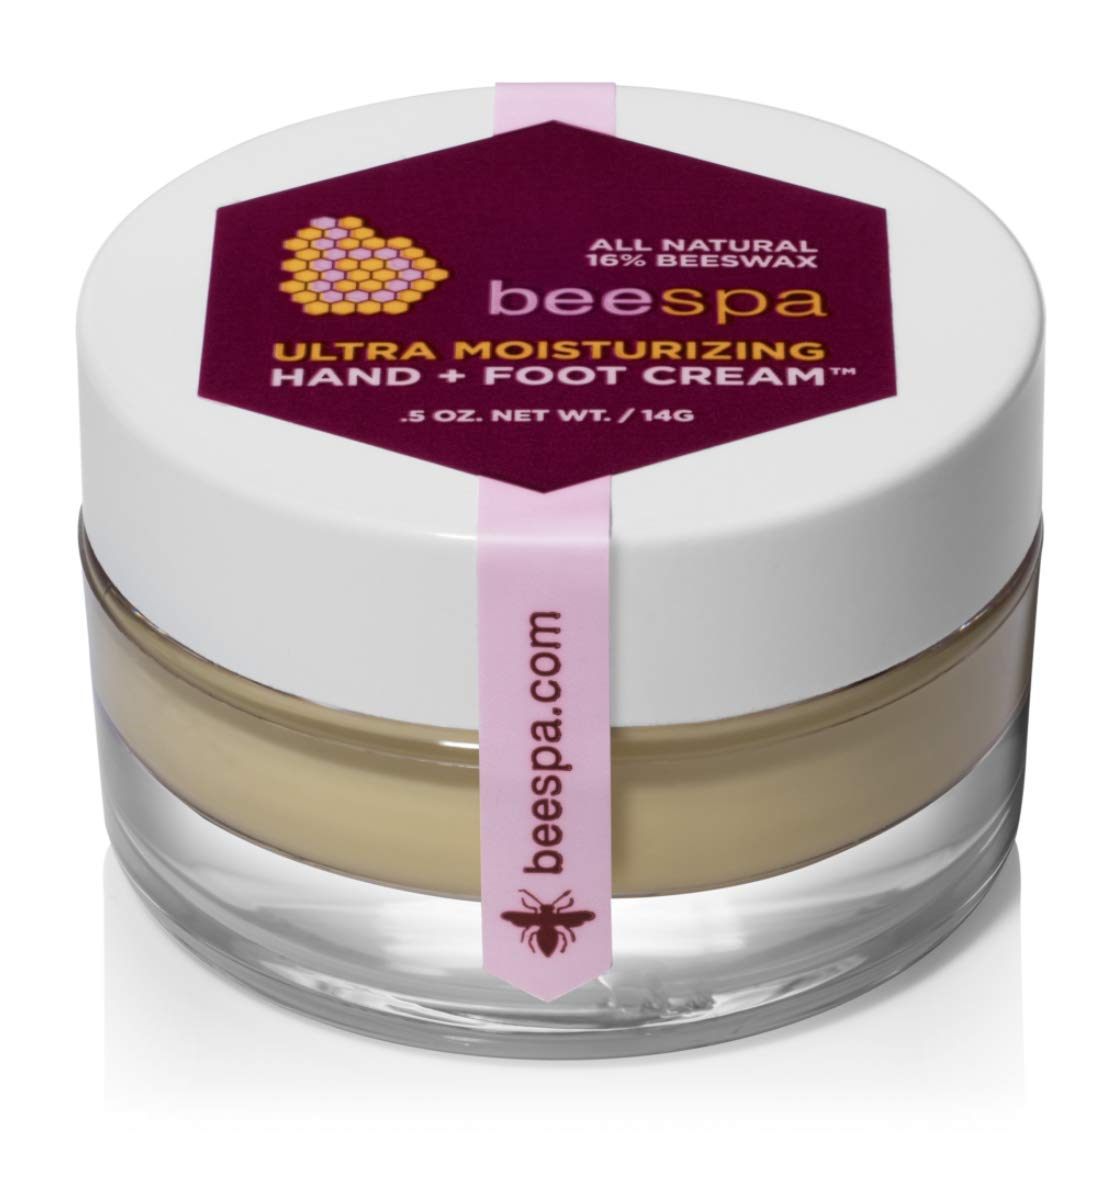 BeeSpa Hand + Foot Cream Mini 0.5oz, travel size, all natural, repairs and smoothes dry and cracked feet and hands, made with essential oils, beeswax and shea butter, anti-aging vitamins and antioxidants nourish